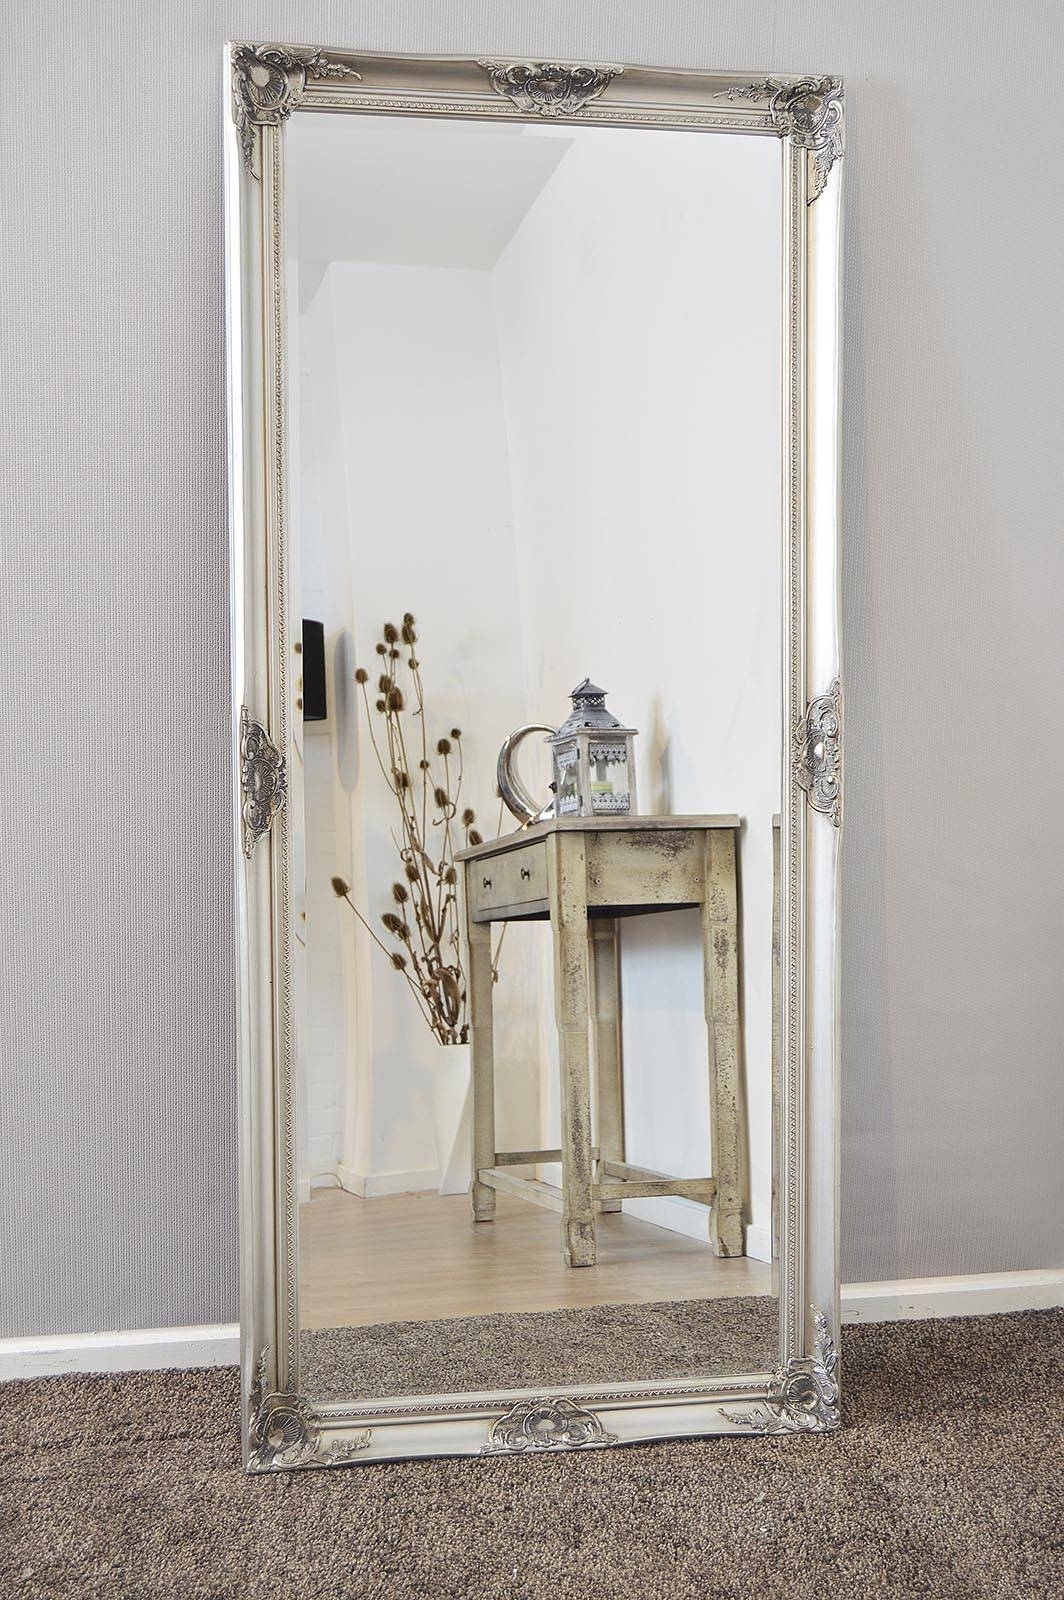 Huge Wall Mirrors Uk | Vanity Decoration inside Big Ornate Mirrors (Image 9 of 15)